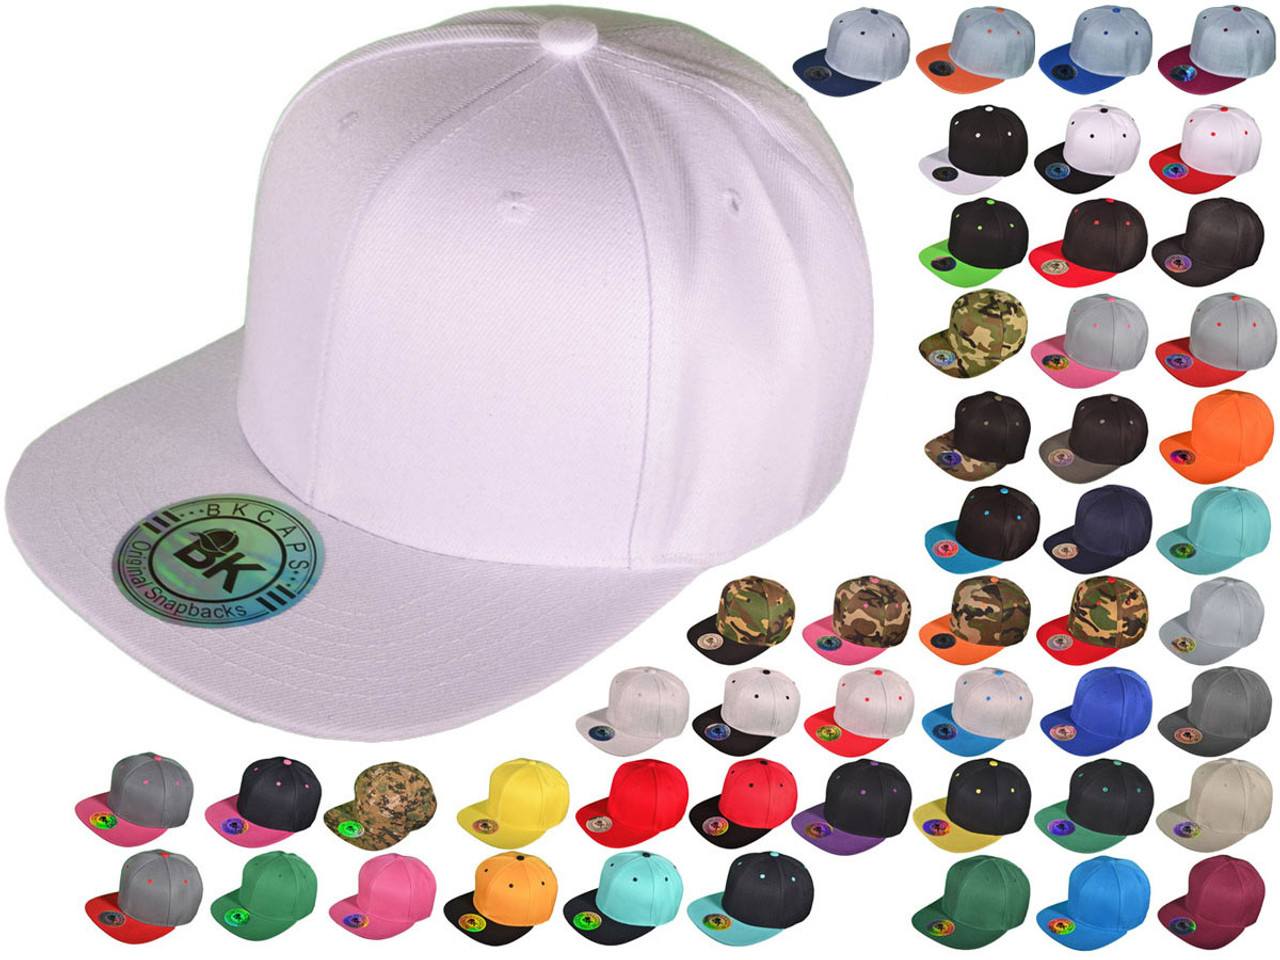 fcd3441c2df Wholesale Flat Bill Blank Plain Snapback Hats with Same Color ...